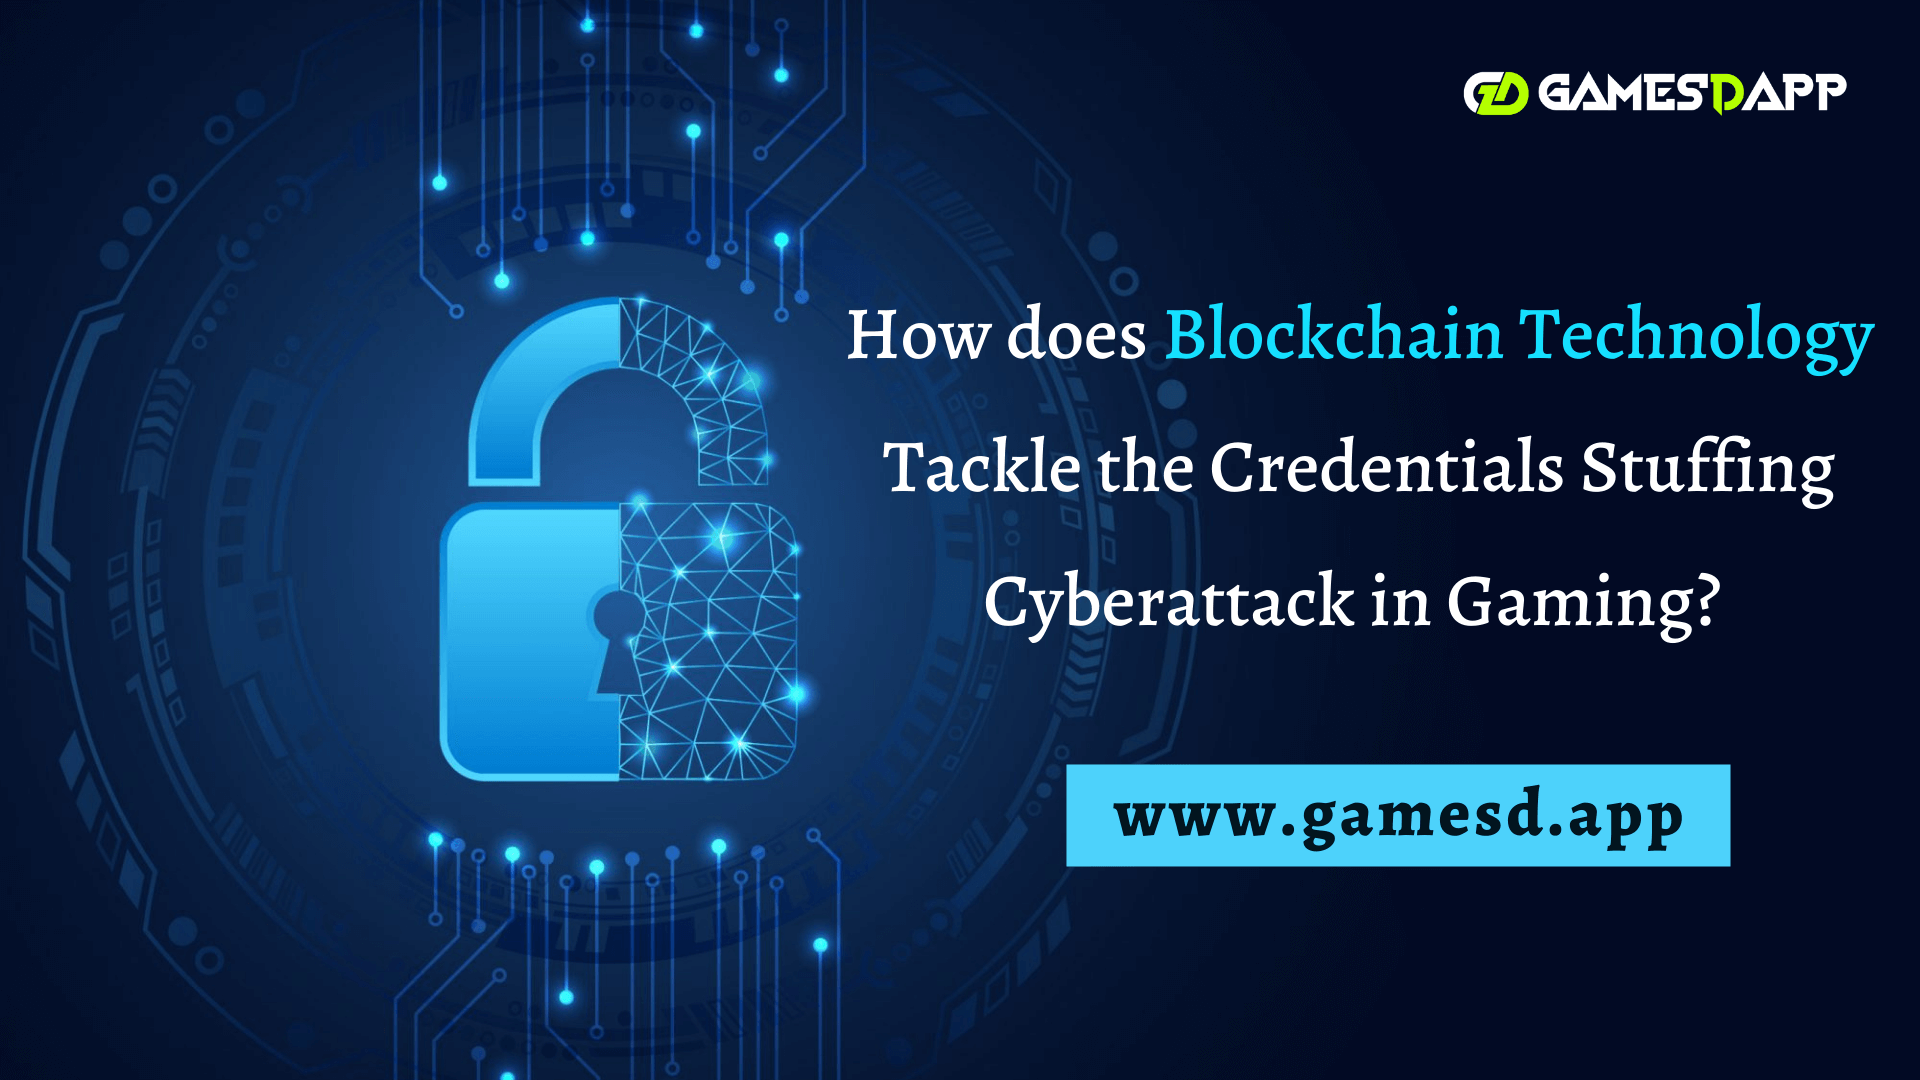 How does Blockchain Technology Tackle the Credentials Stuffing Cyberattack in Gaming?